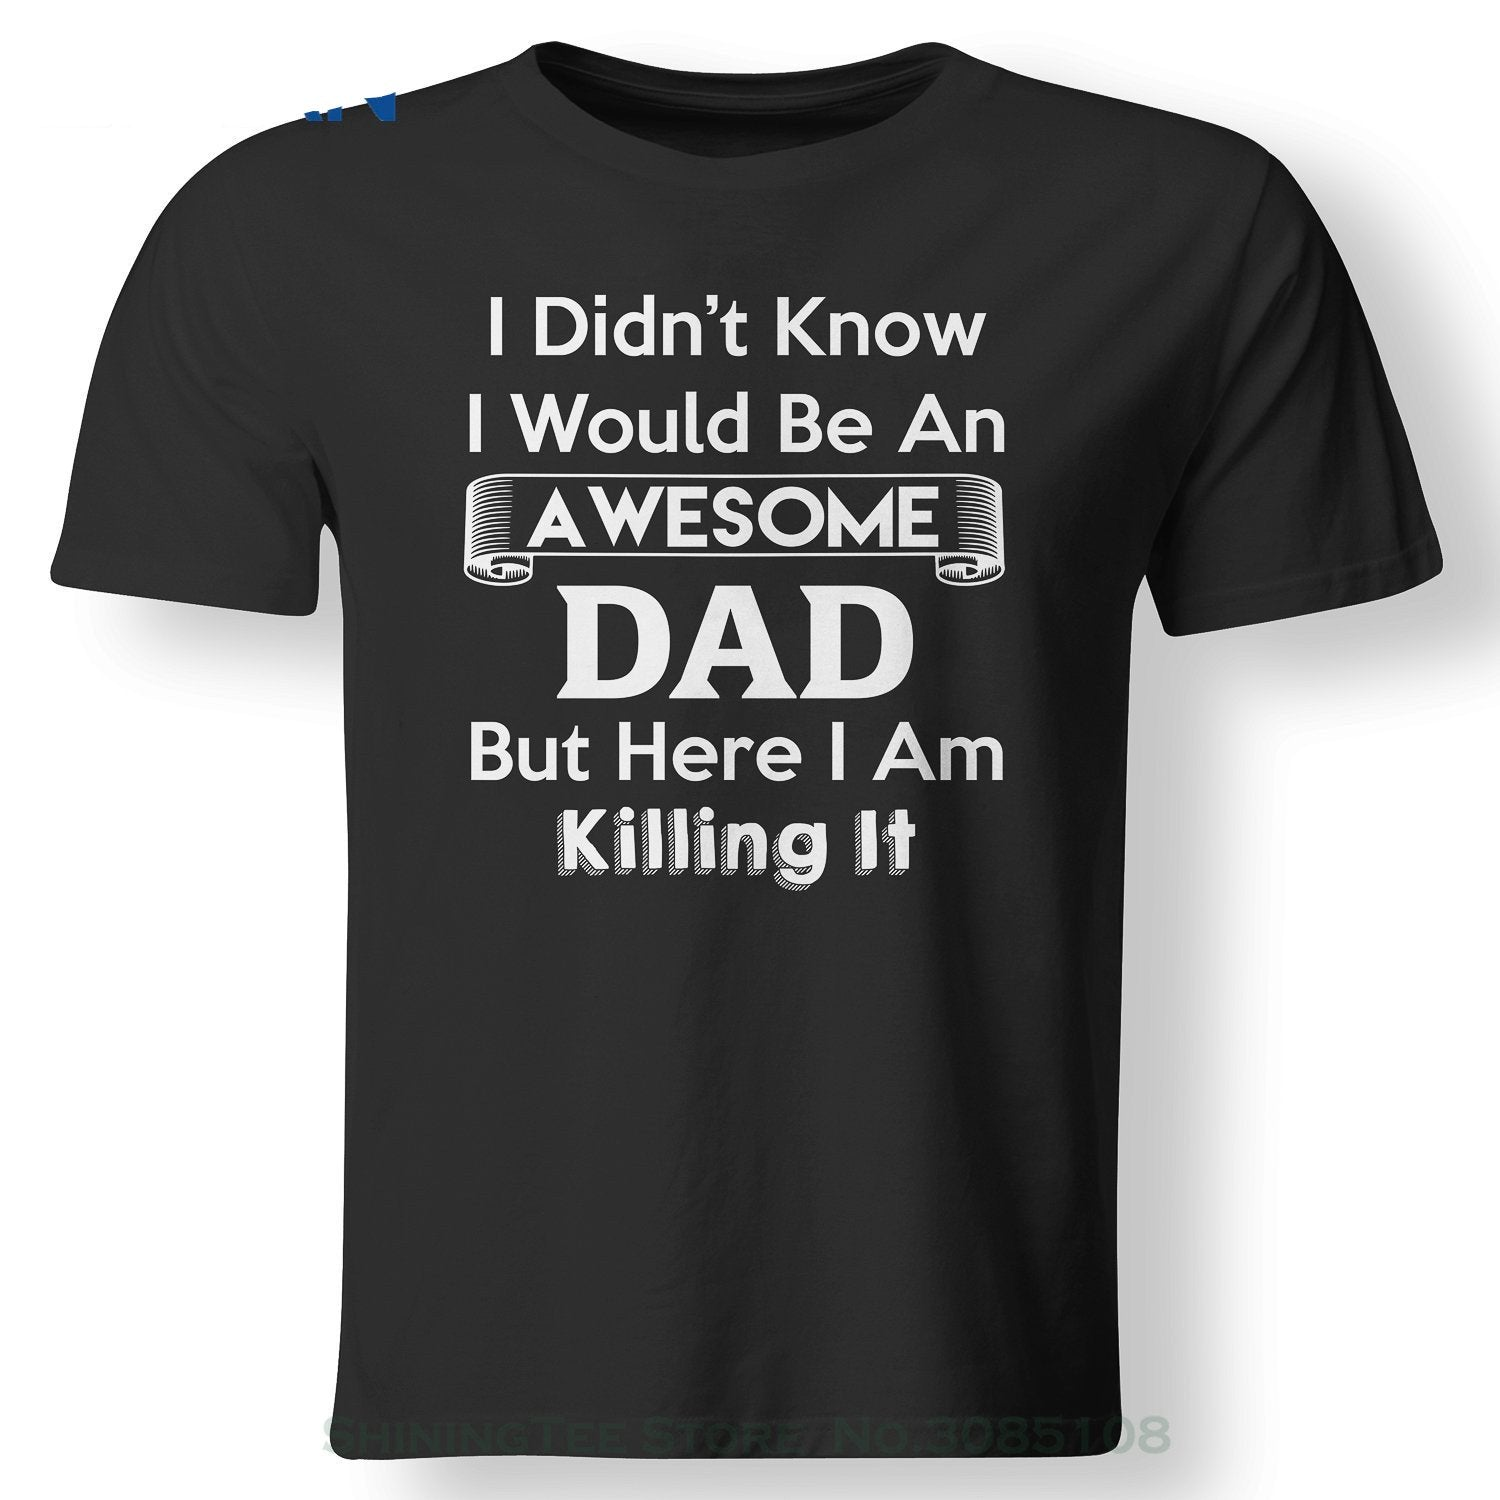 I Didn't Know I Would Be An Awesome Dad But Here I Am Killing It - Men's T-shirt - Cozzoo